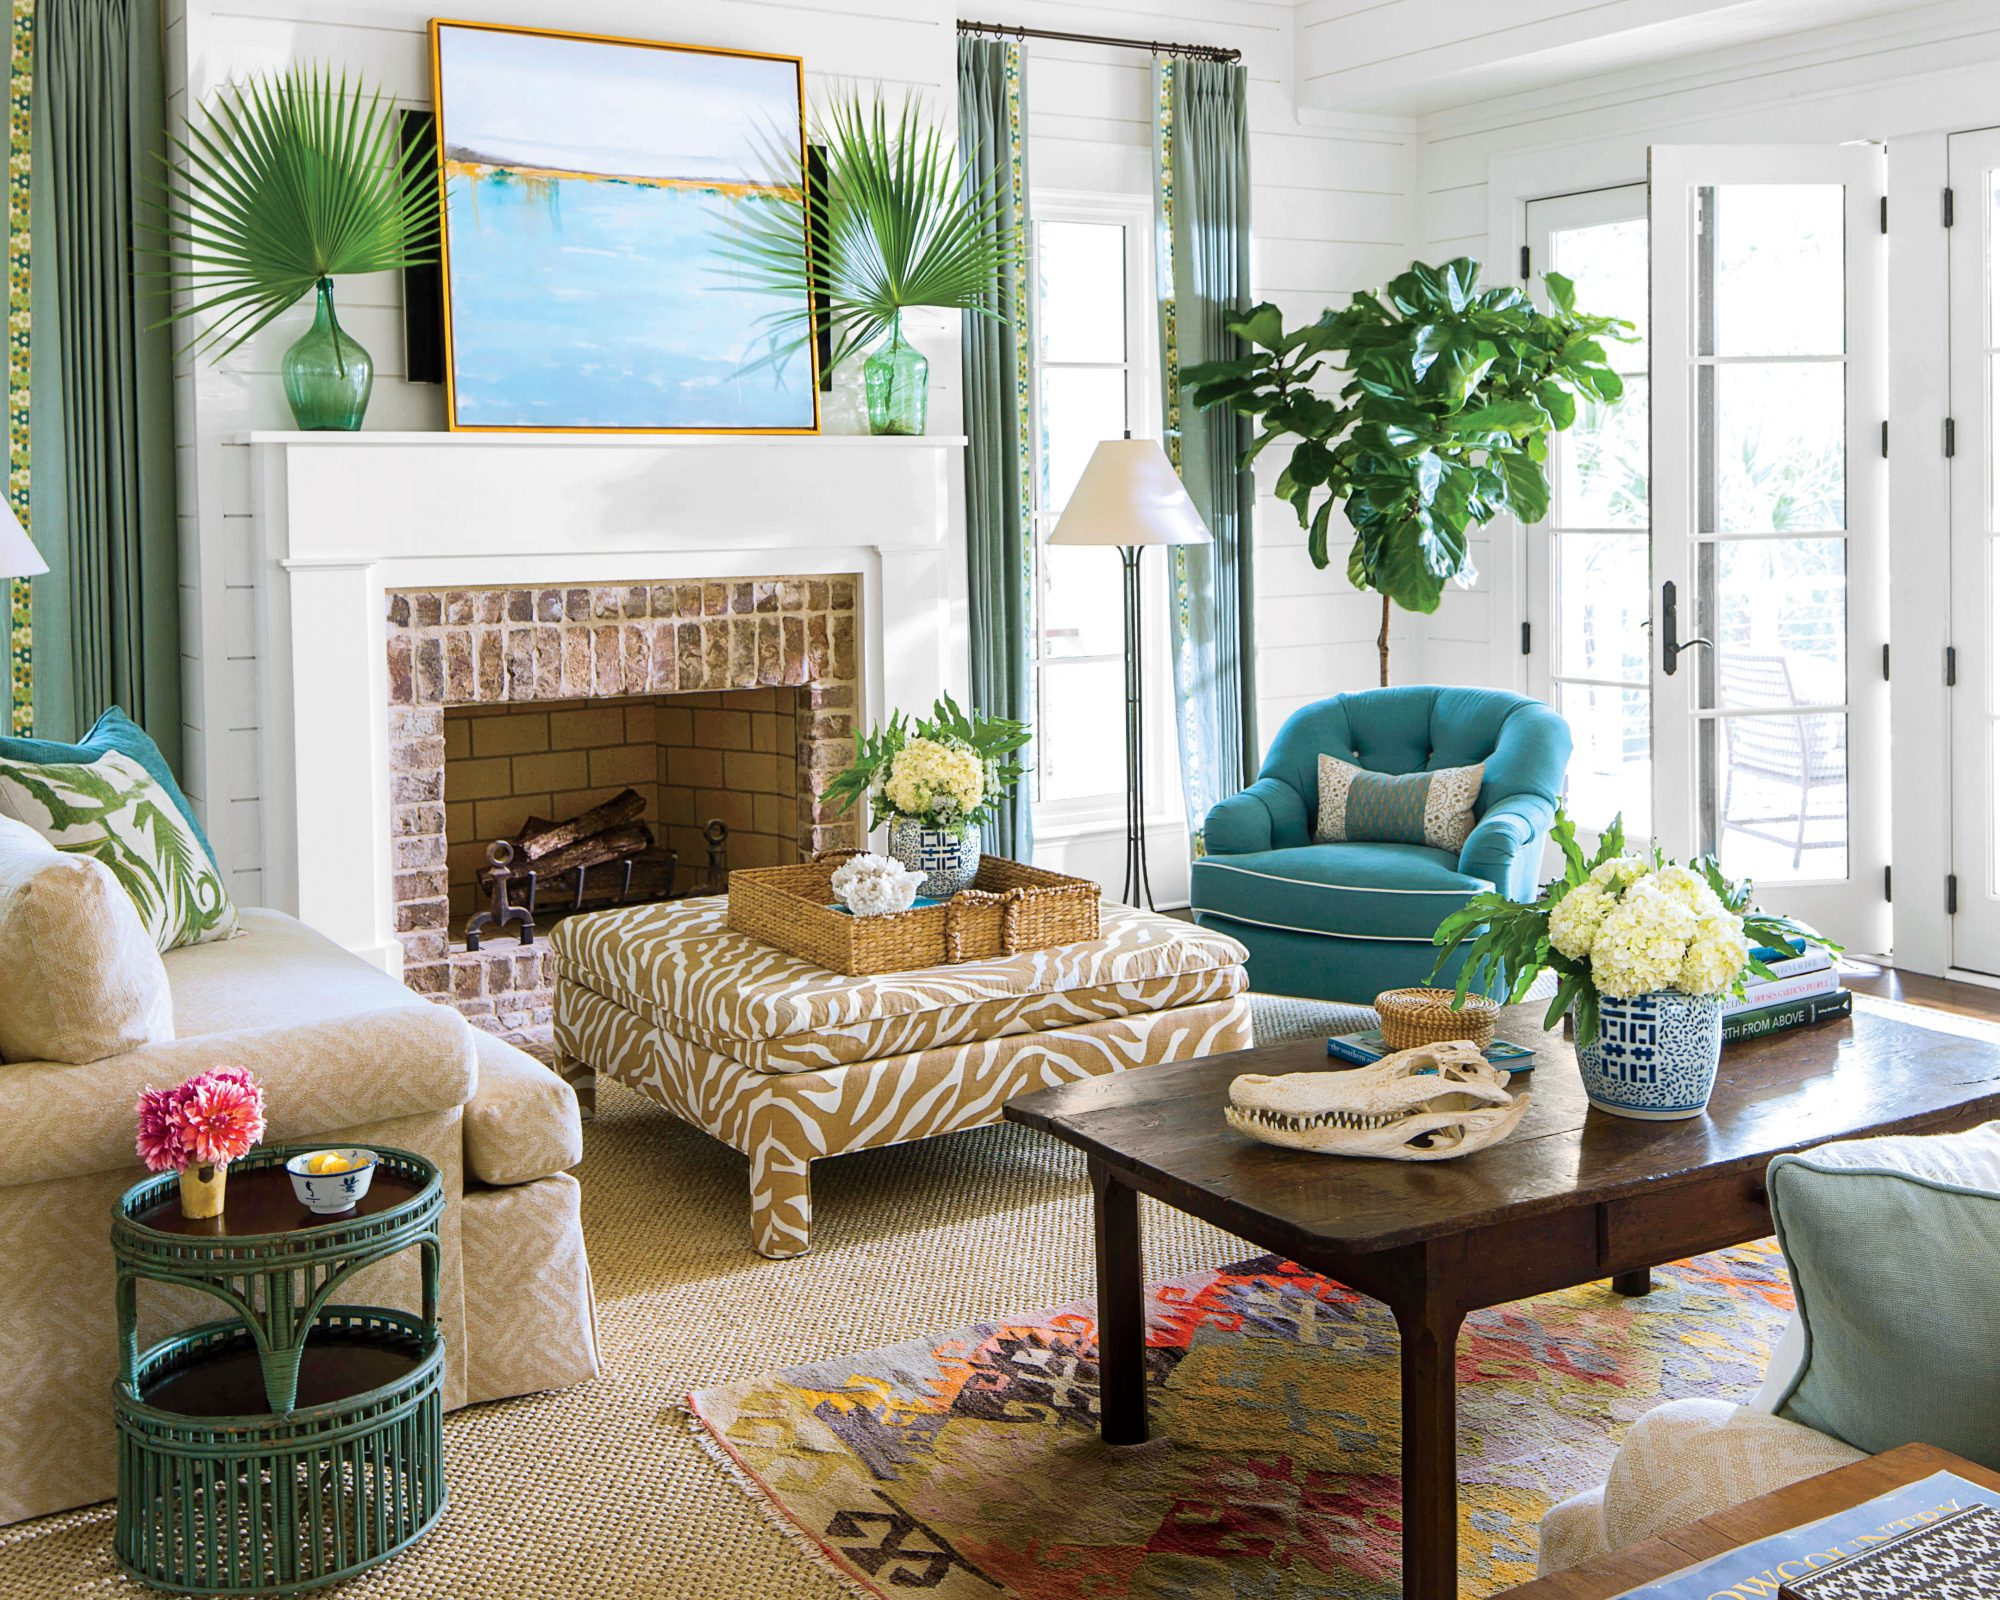 Room Decorating Ideas Captivating 106 Living Room Decorating Ideas  Southern Living Inspiration Design